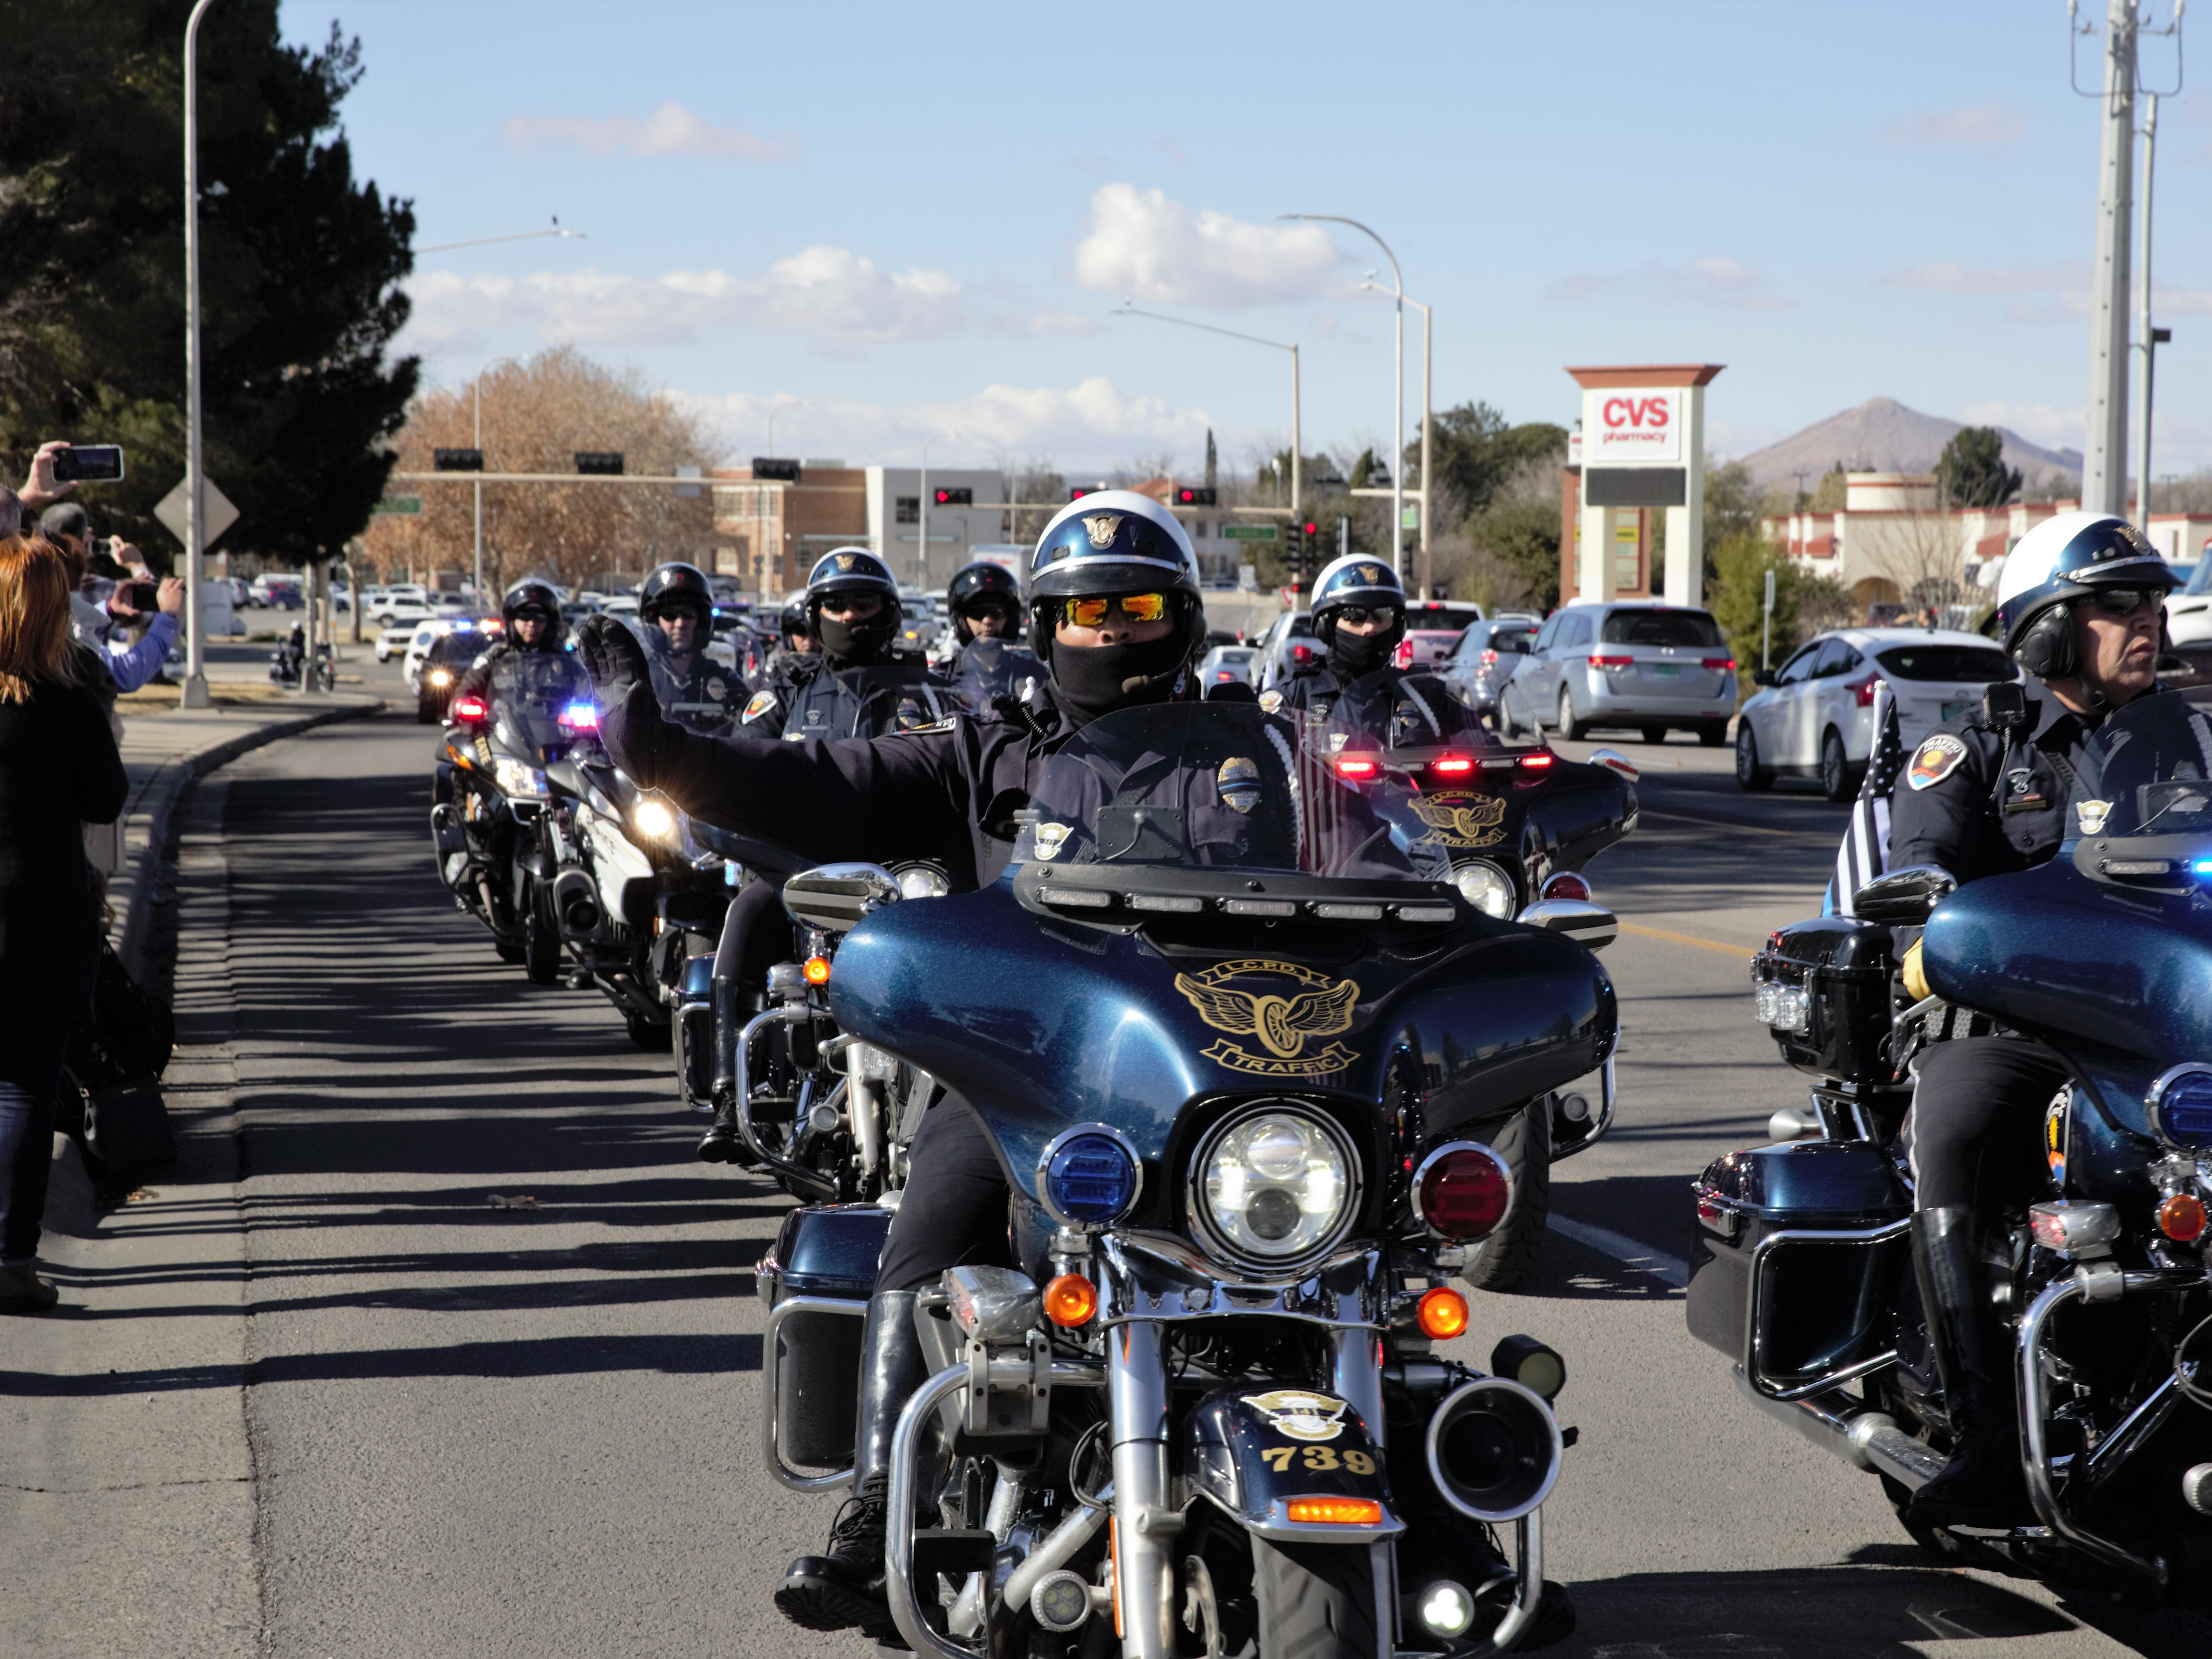 Las Cruces Police Department motorcycle officers lead a funeral procession on Picacho Avenue on Friday, Jan. 11, 2019 for former LCPD police Chief Jaime Montoya.